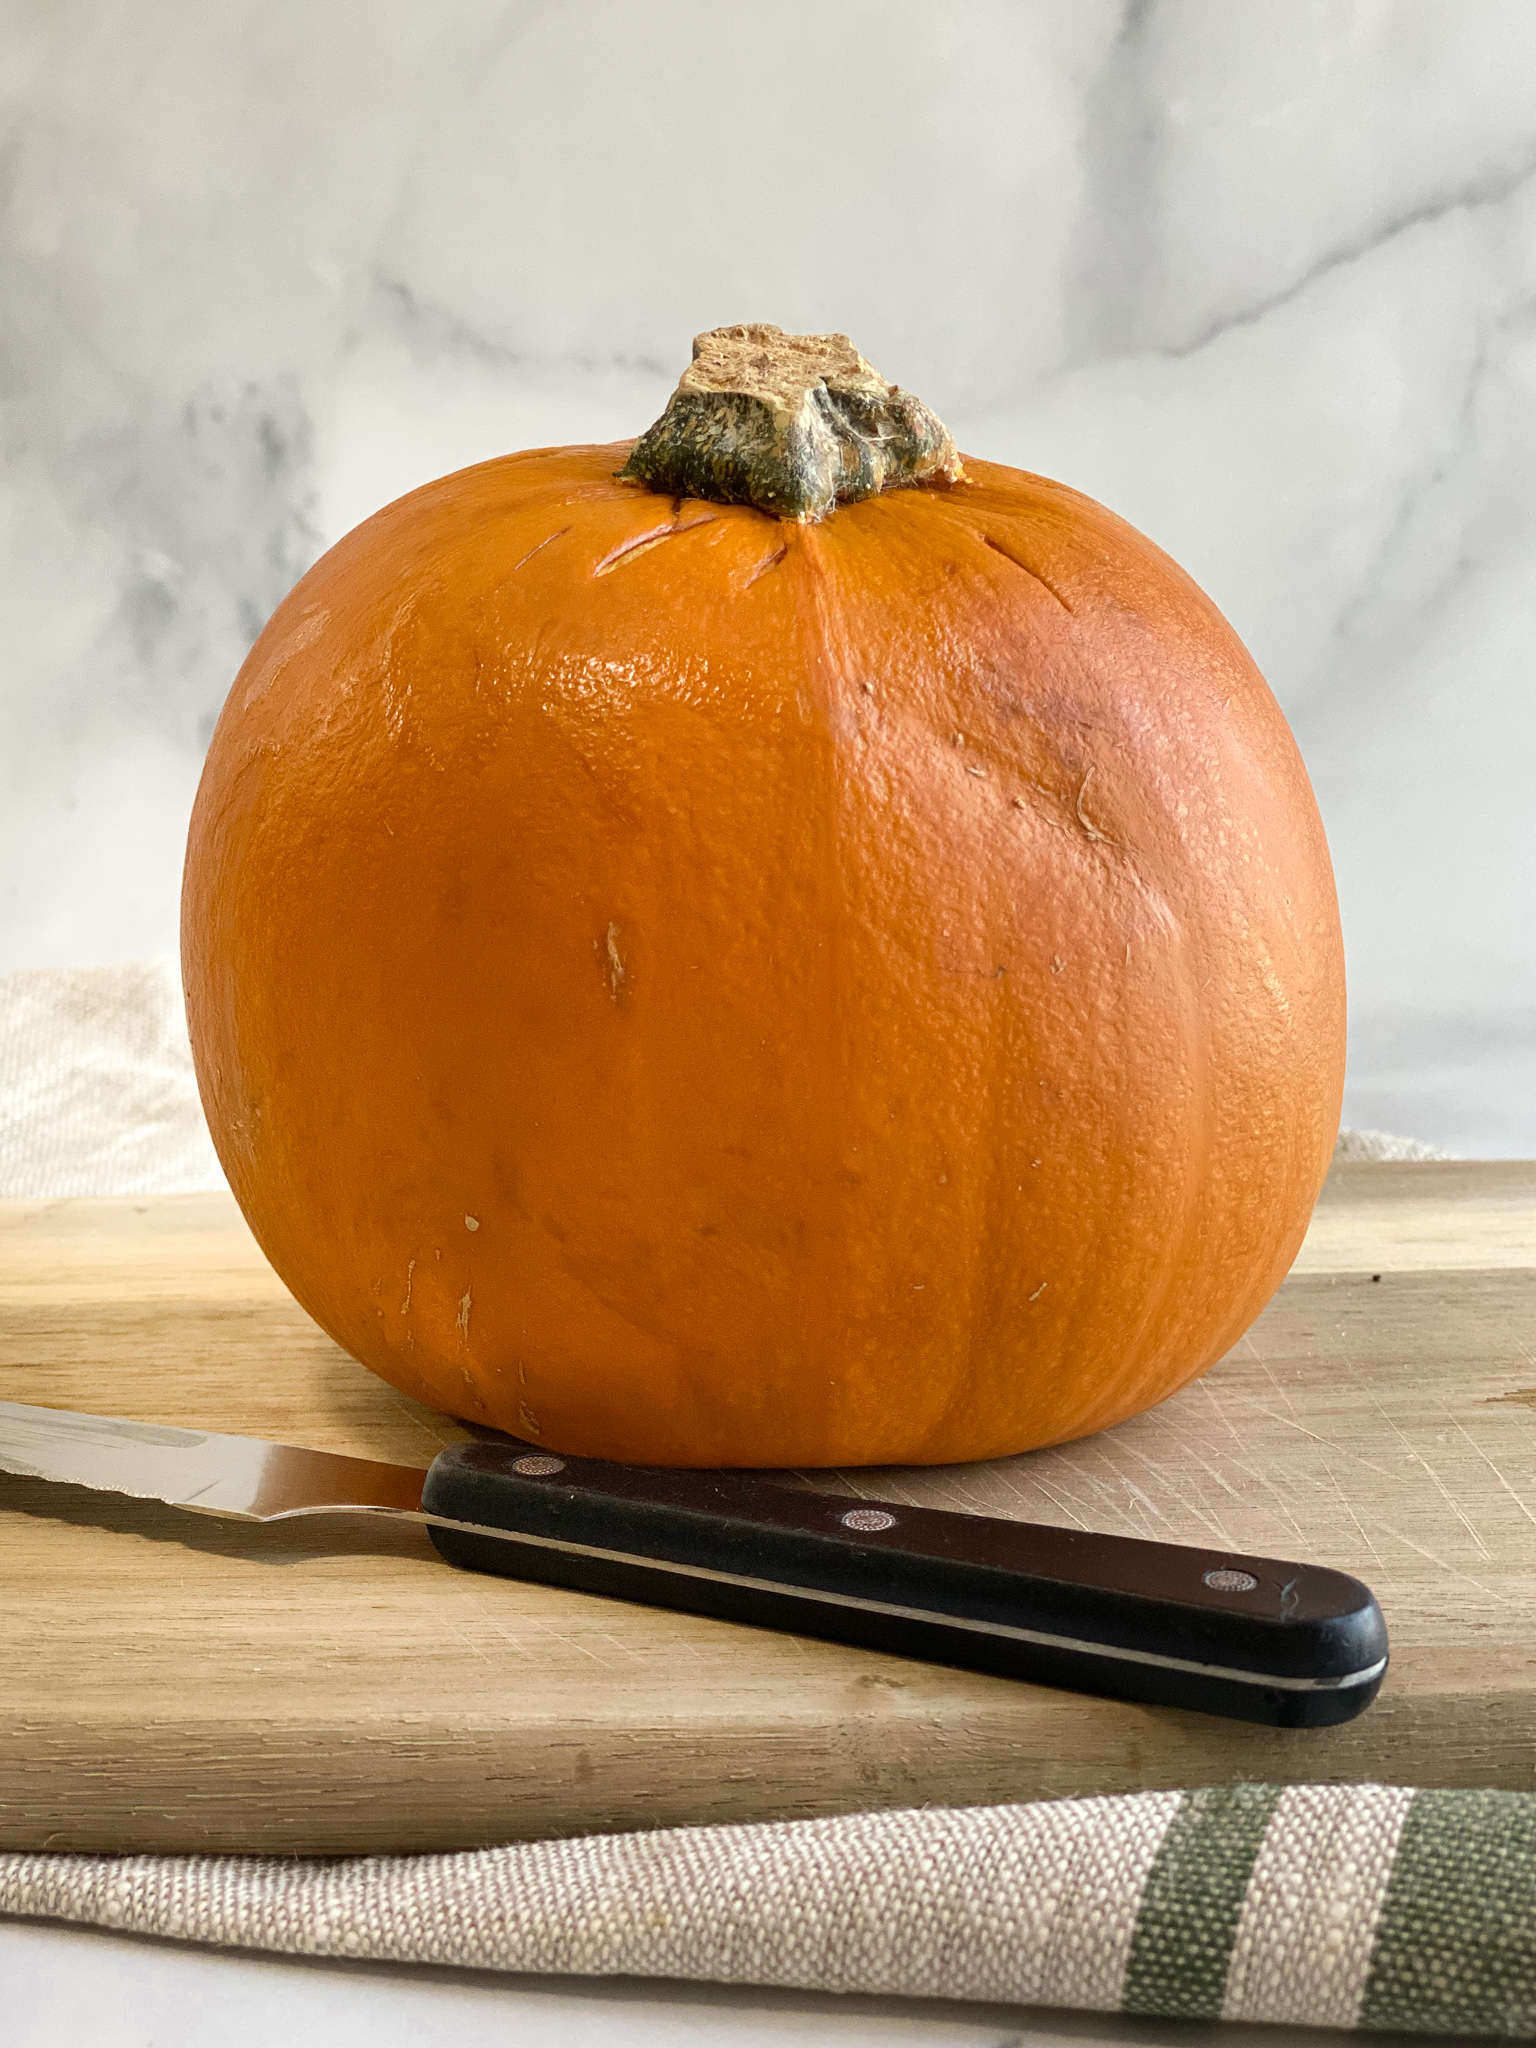 Step 3 - Bake the whole pumpkin in a 350 degree oven for about 45 minutes to an hour or until it is soft and slightly darker in color. Allow it cool to the touch before moving on.